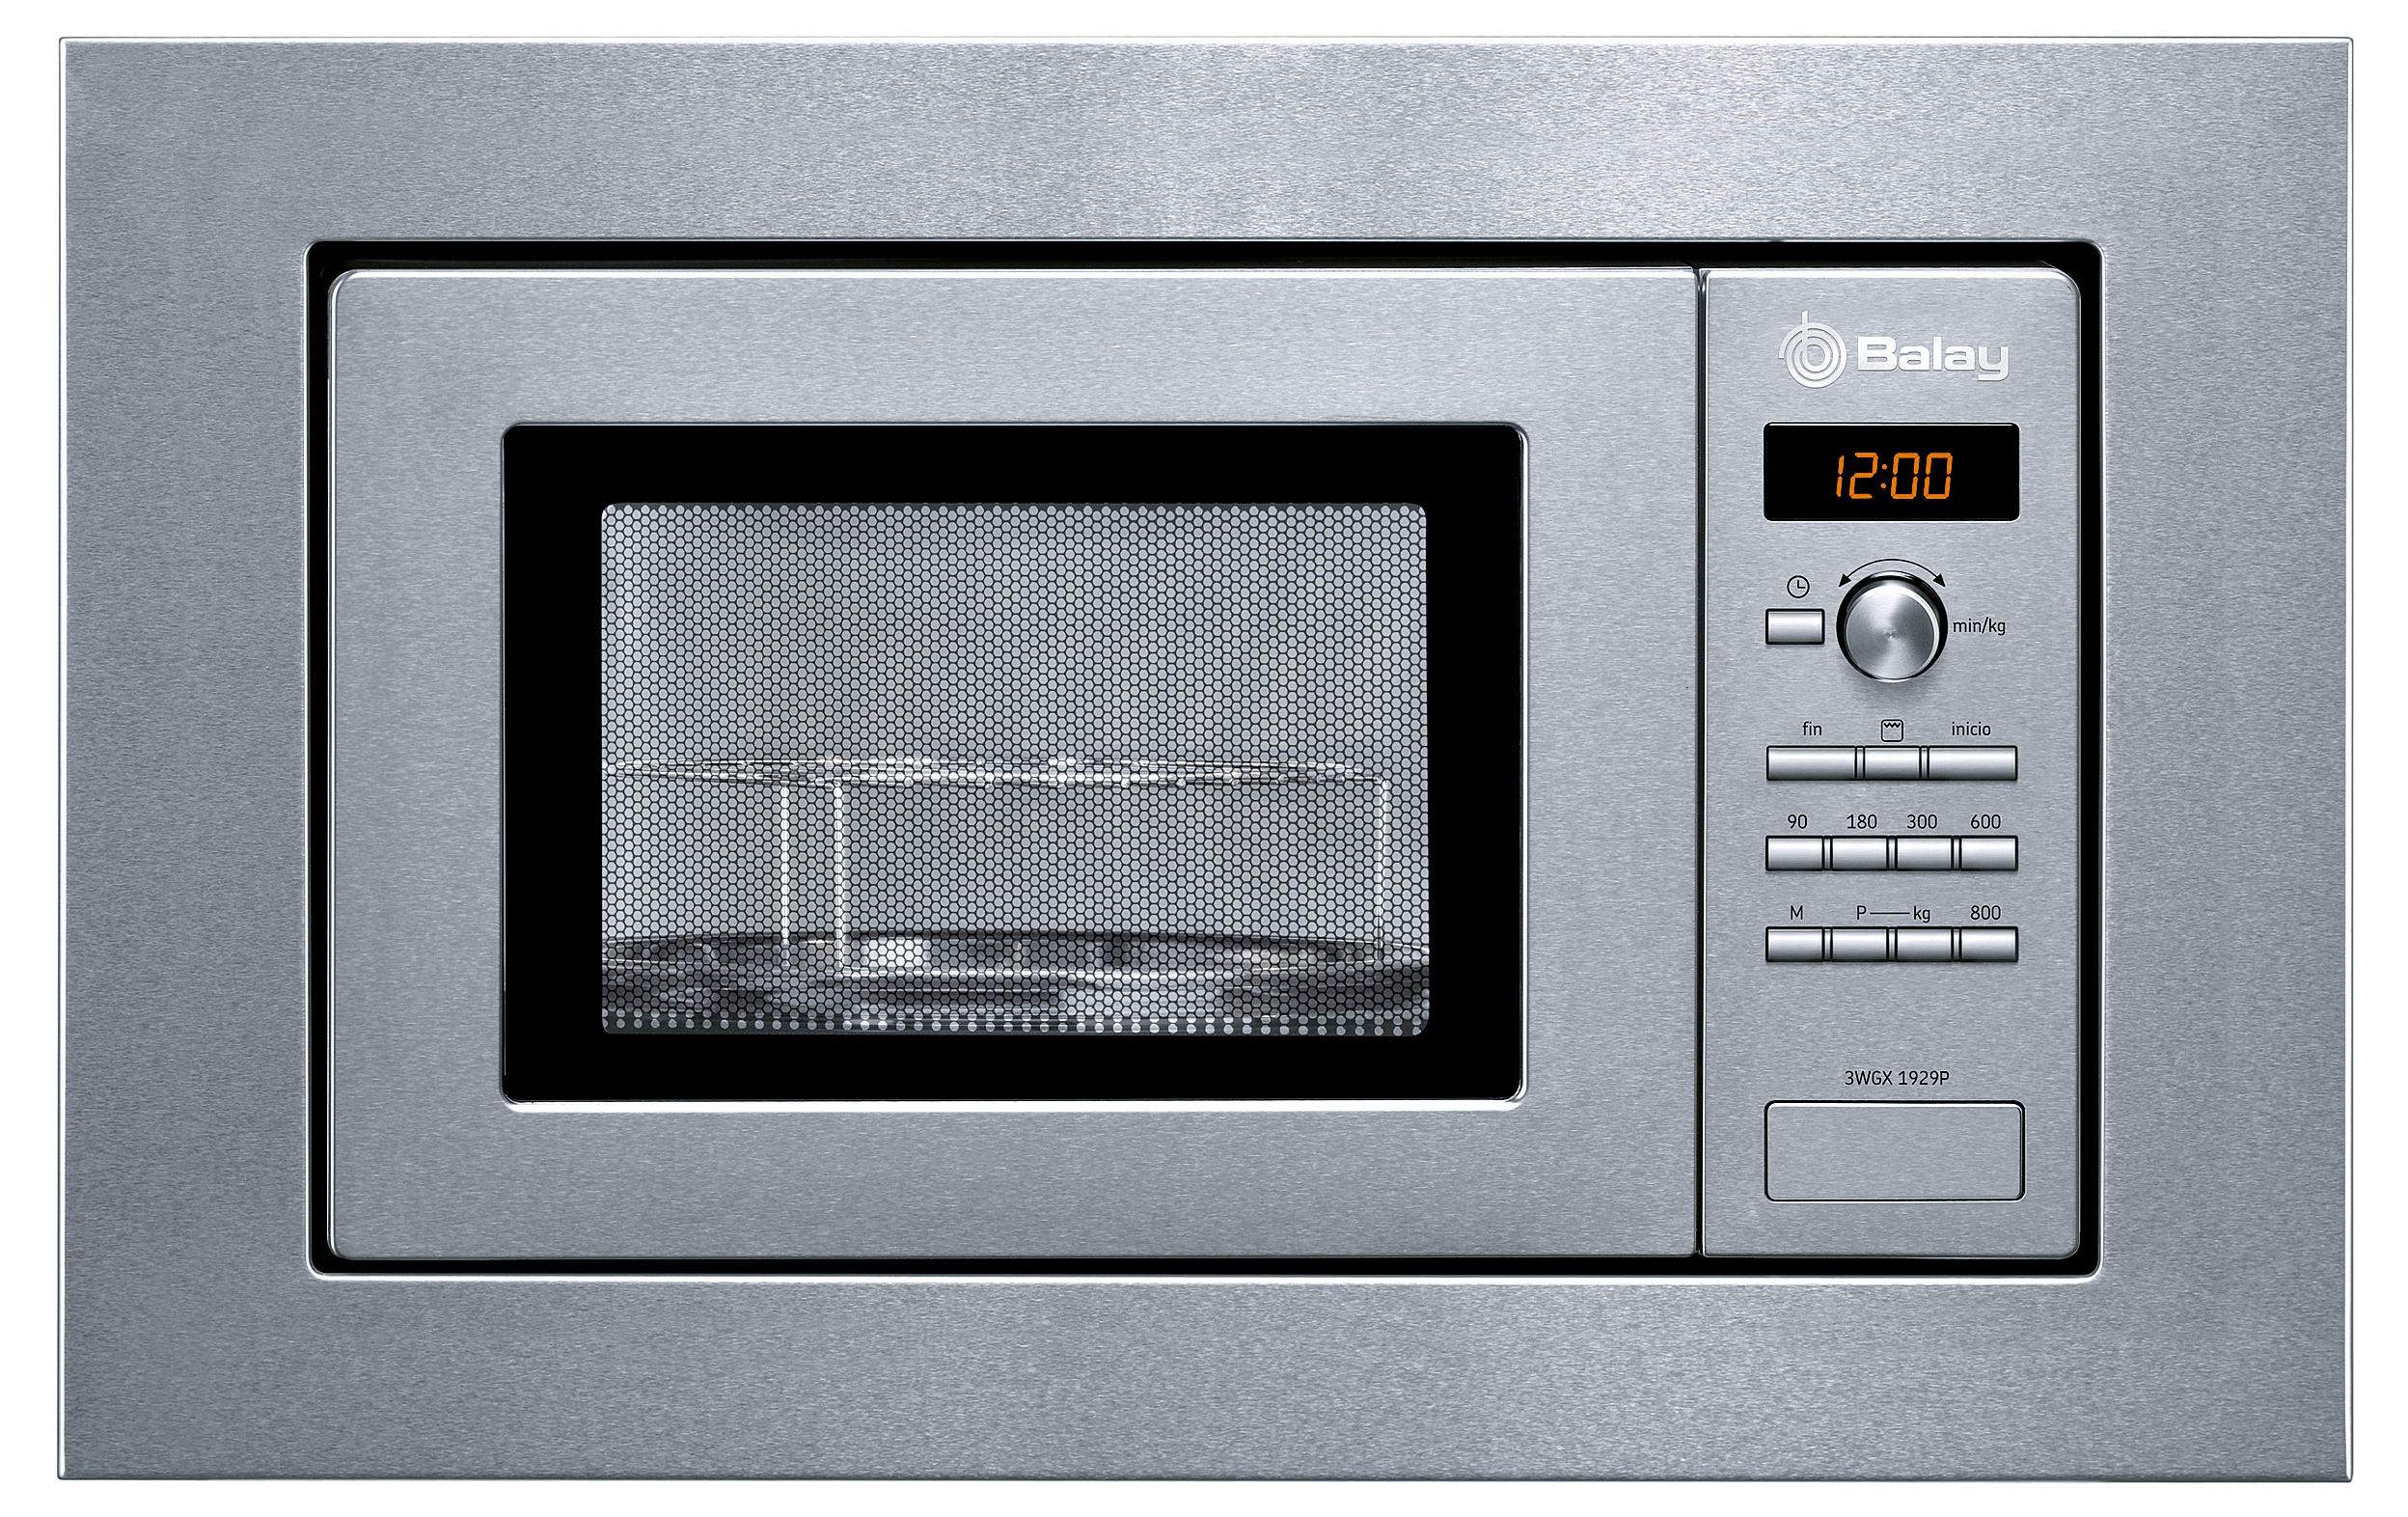 Microondas Balay 3WGX1929P Integrable Con Grill 18 Litros